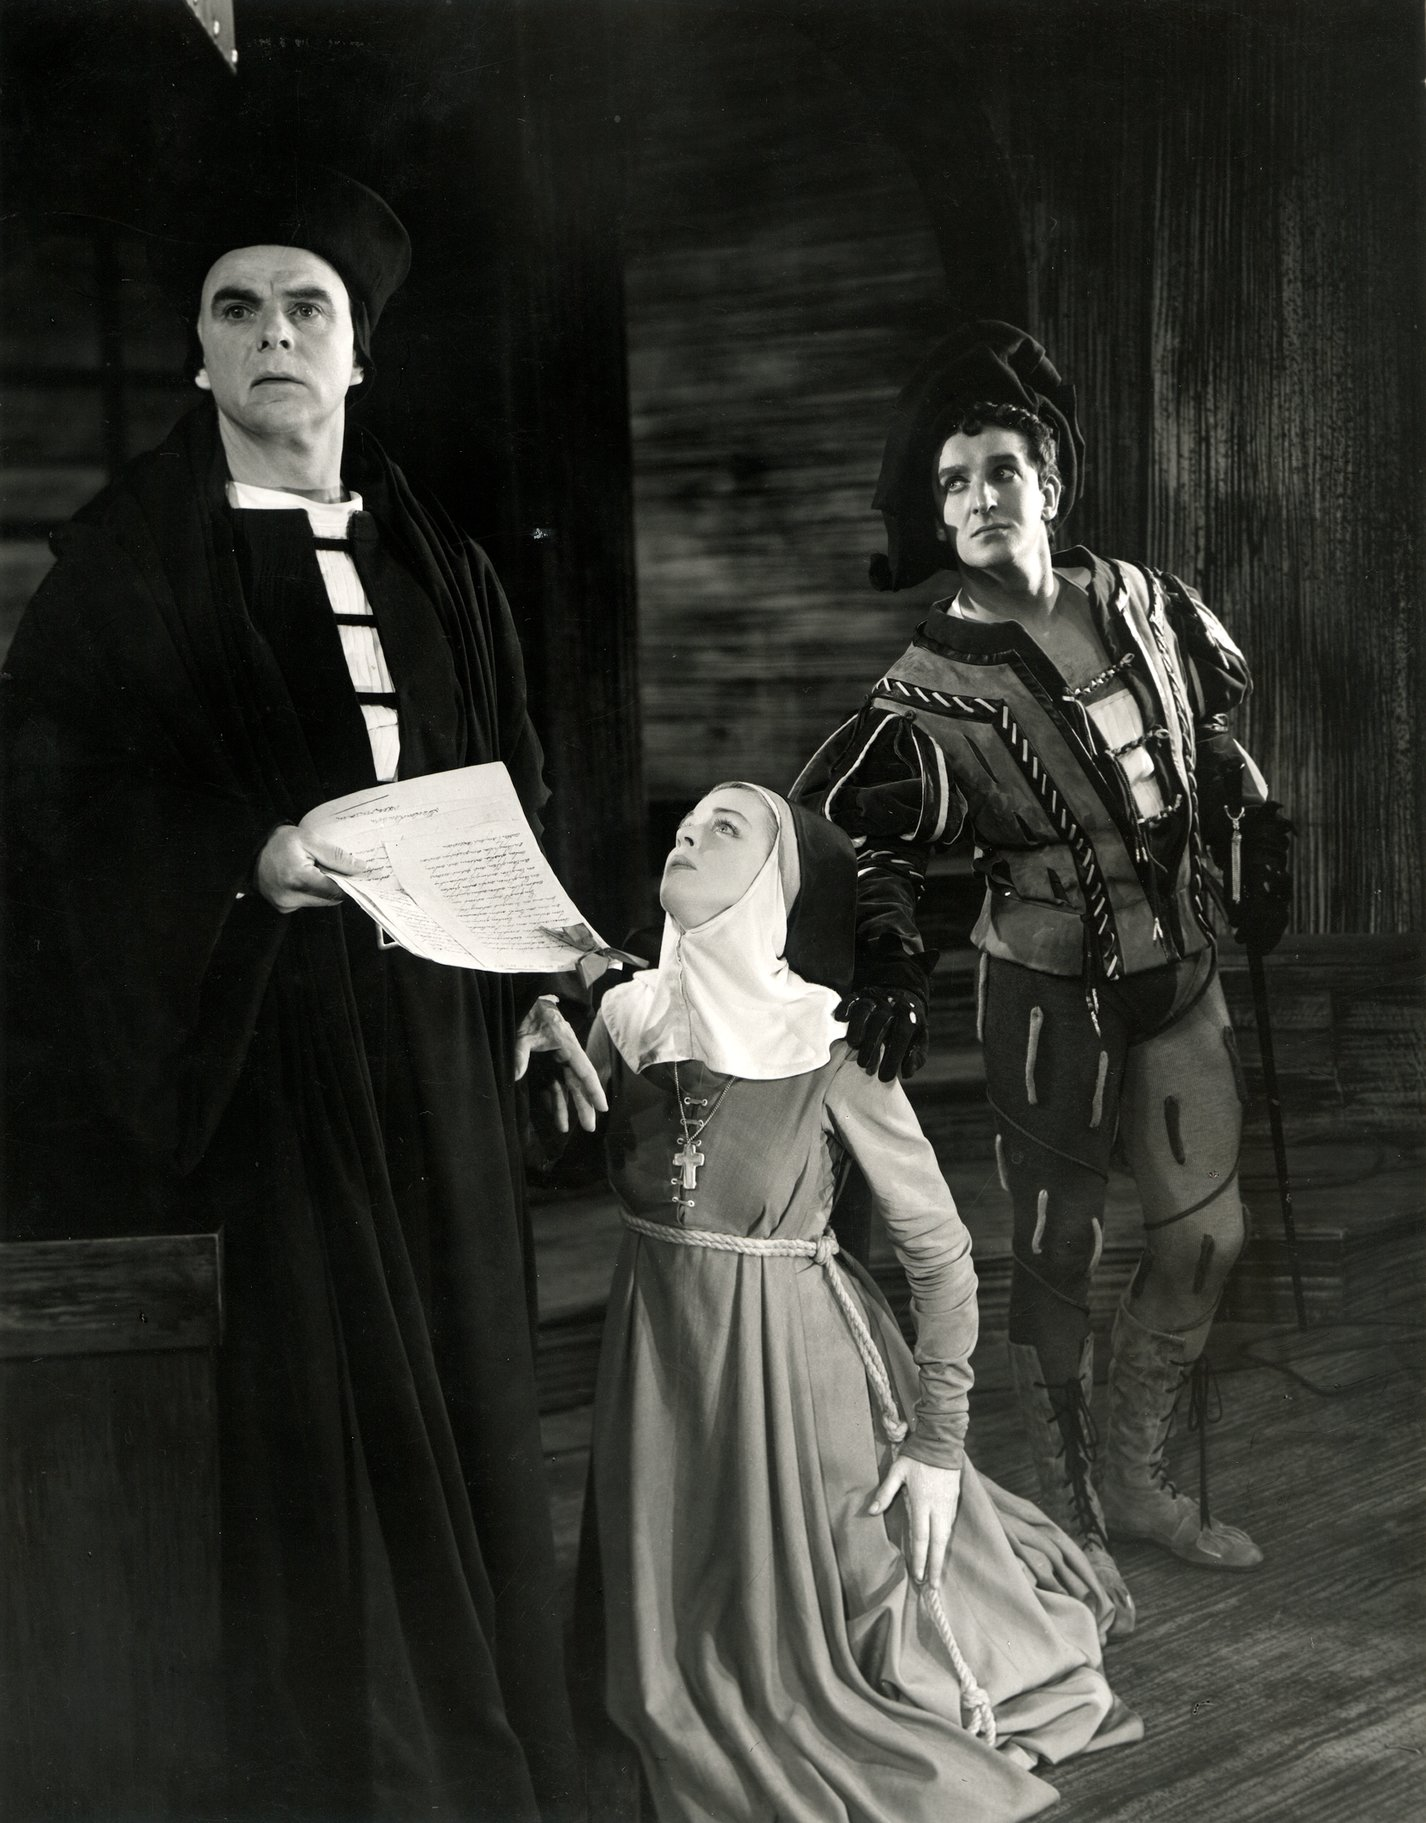 A woman kneels at the side of a man, as another man puts a warning hand on her shoulder.